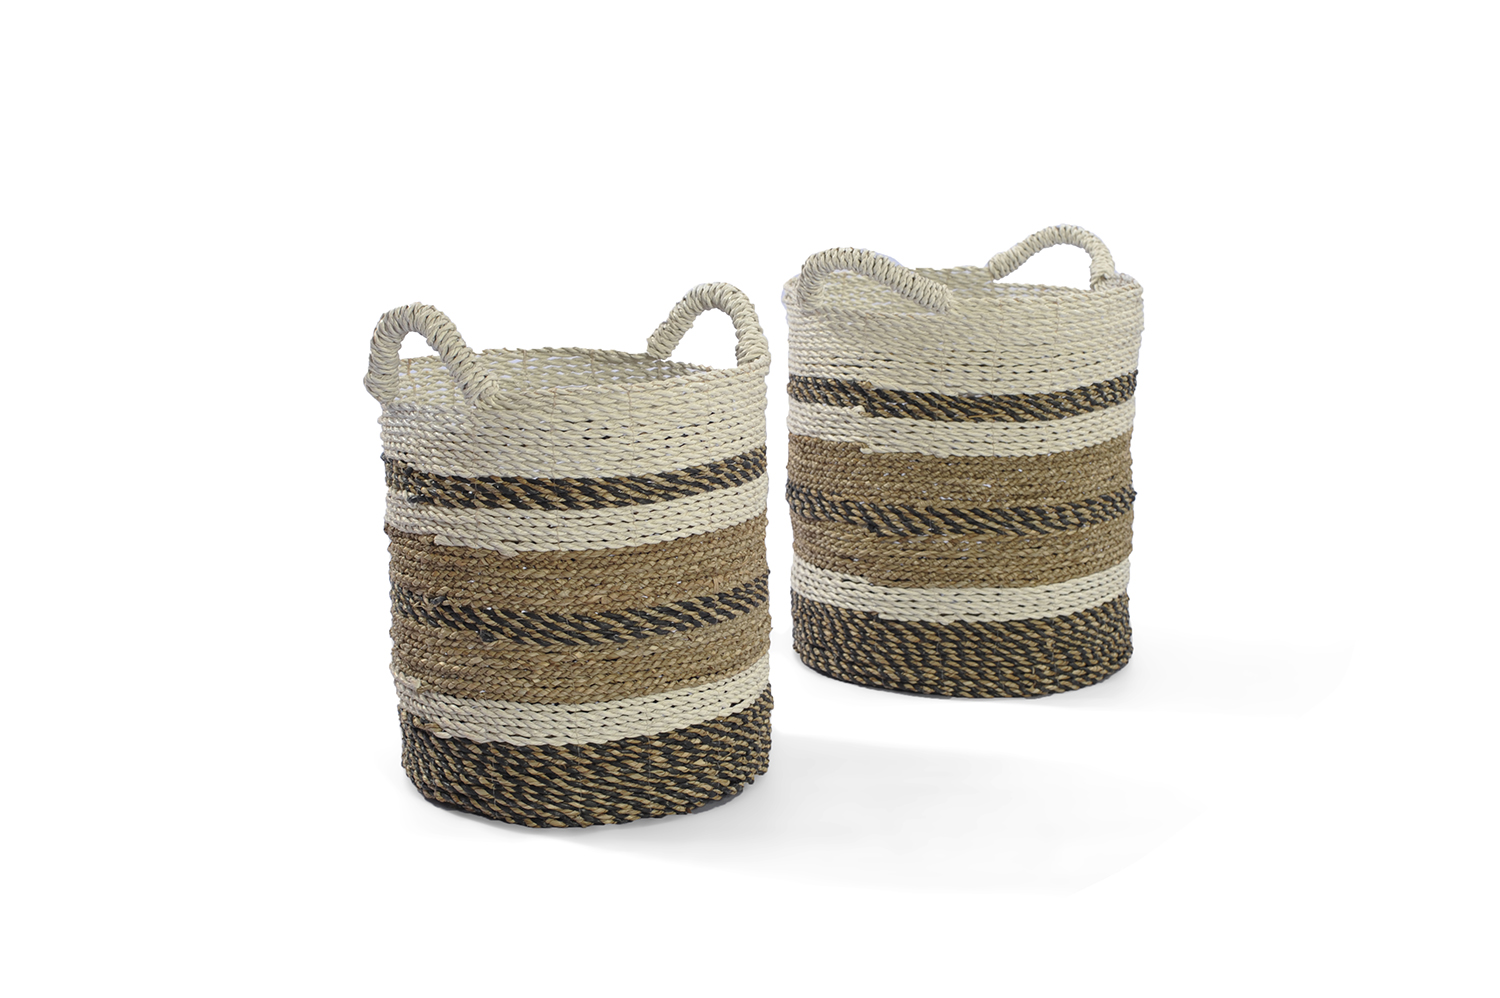 Miara Basket Set Of 2